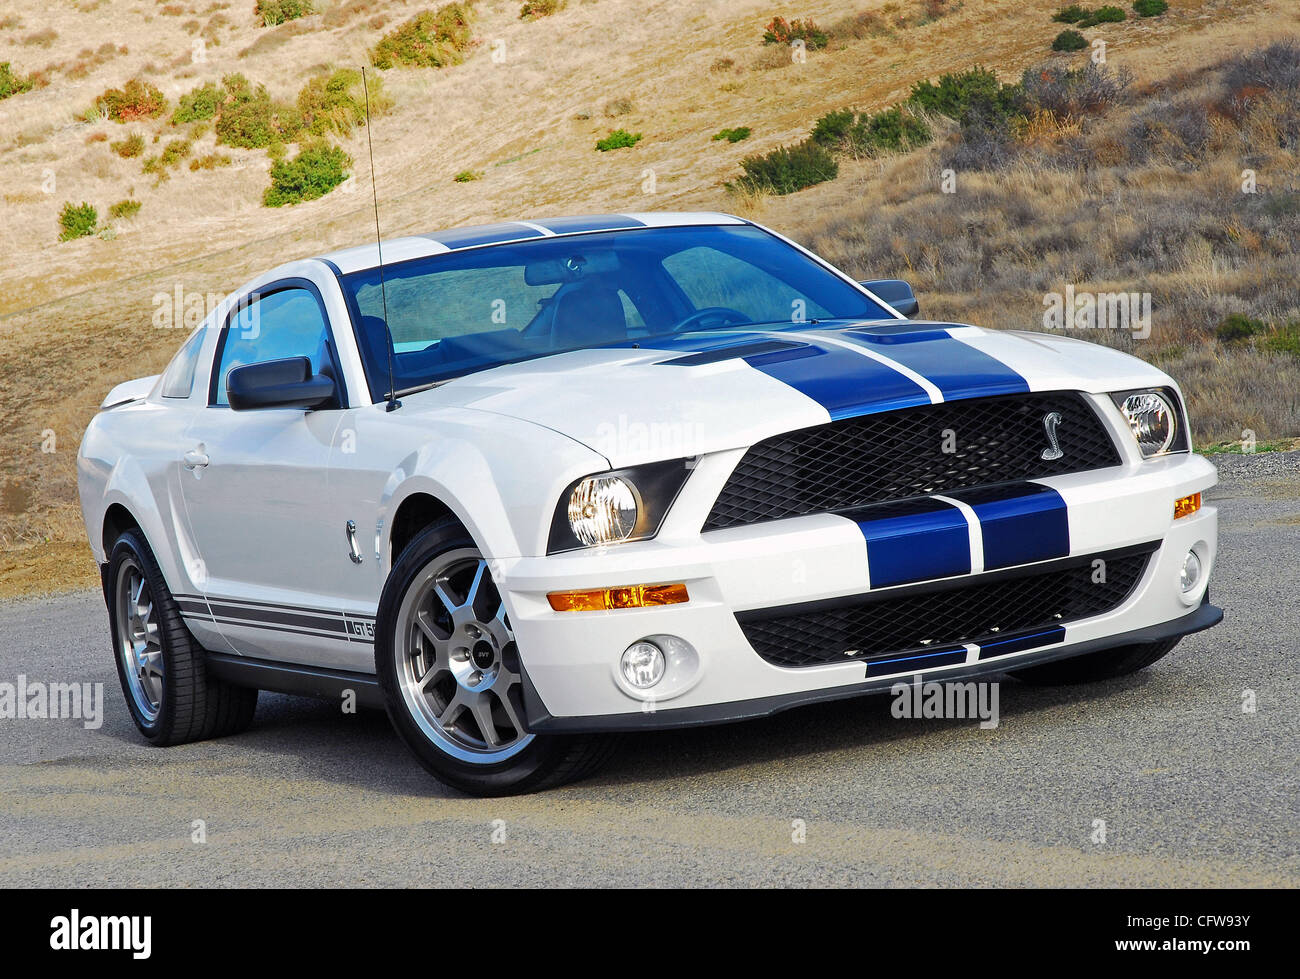 2007 Ford Mustang Shelby Cobra Stock Photos & 2007 Ford Mustang ...